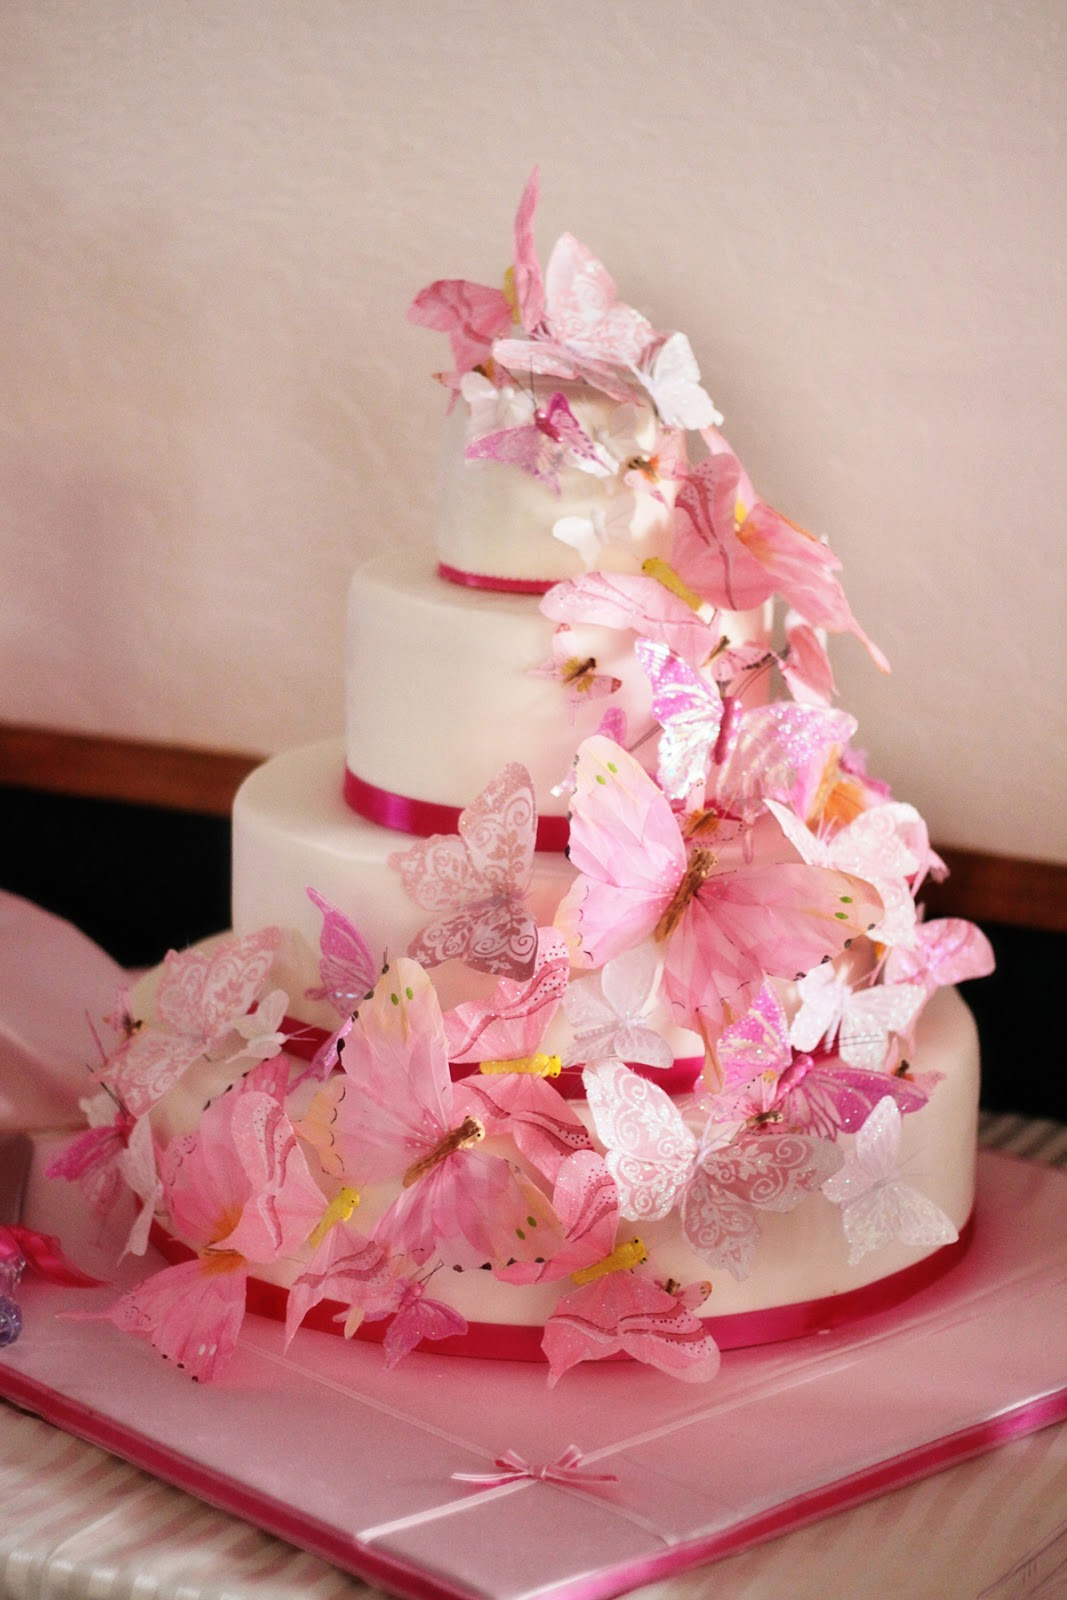 Cake Decorating Images : Wedding Cakes Pictures: Butterfly Wedding Cake Decorations ...